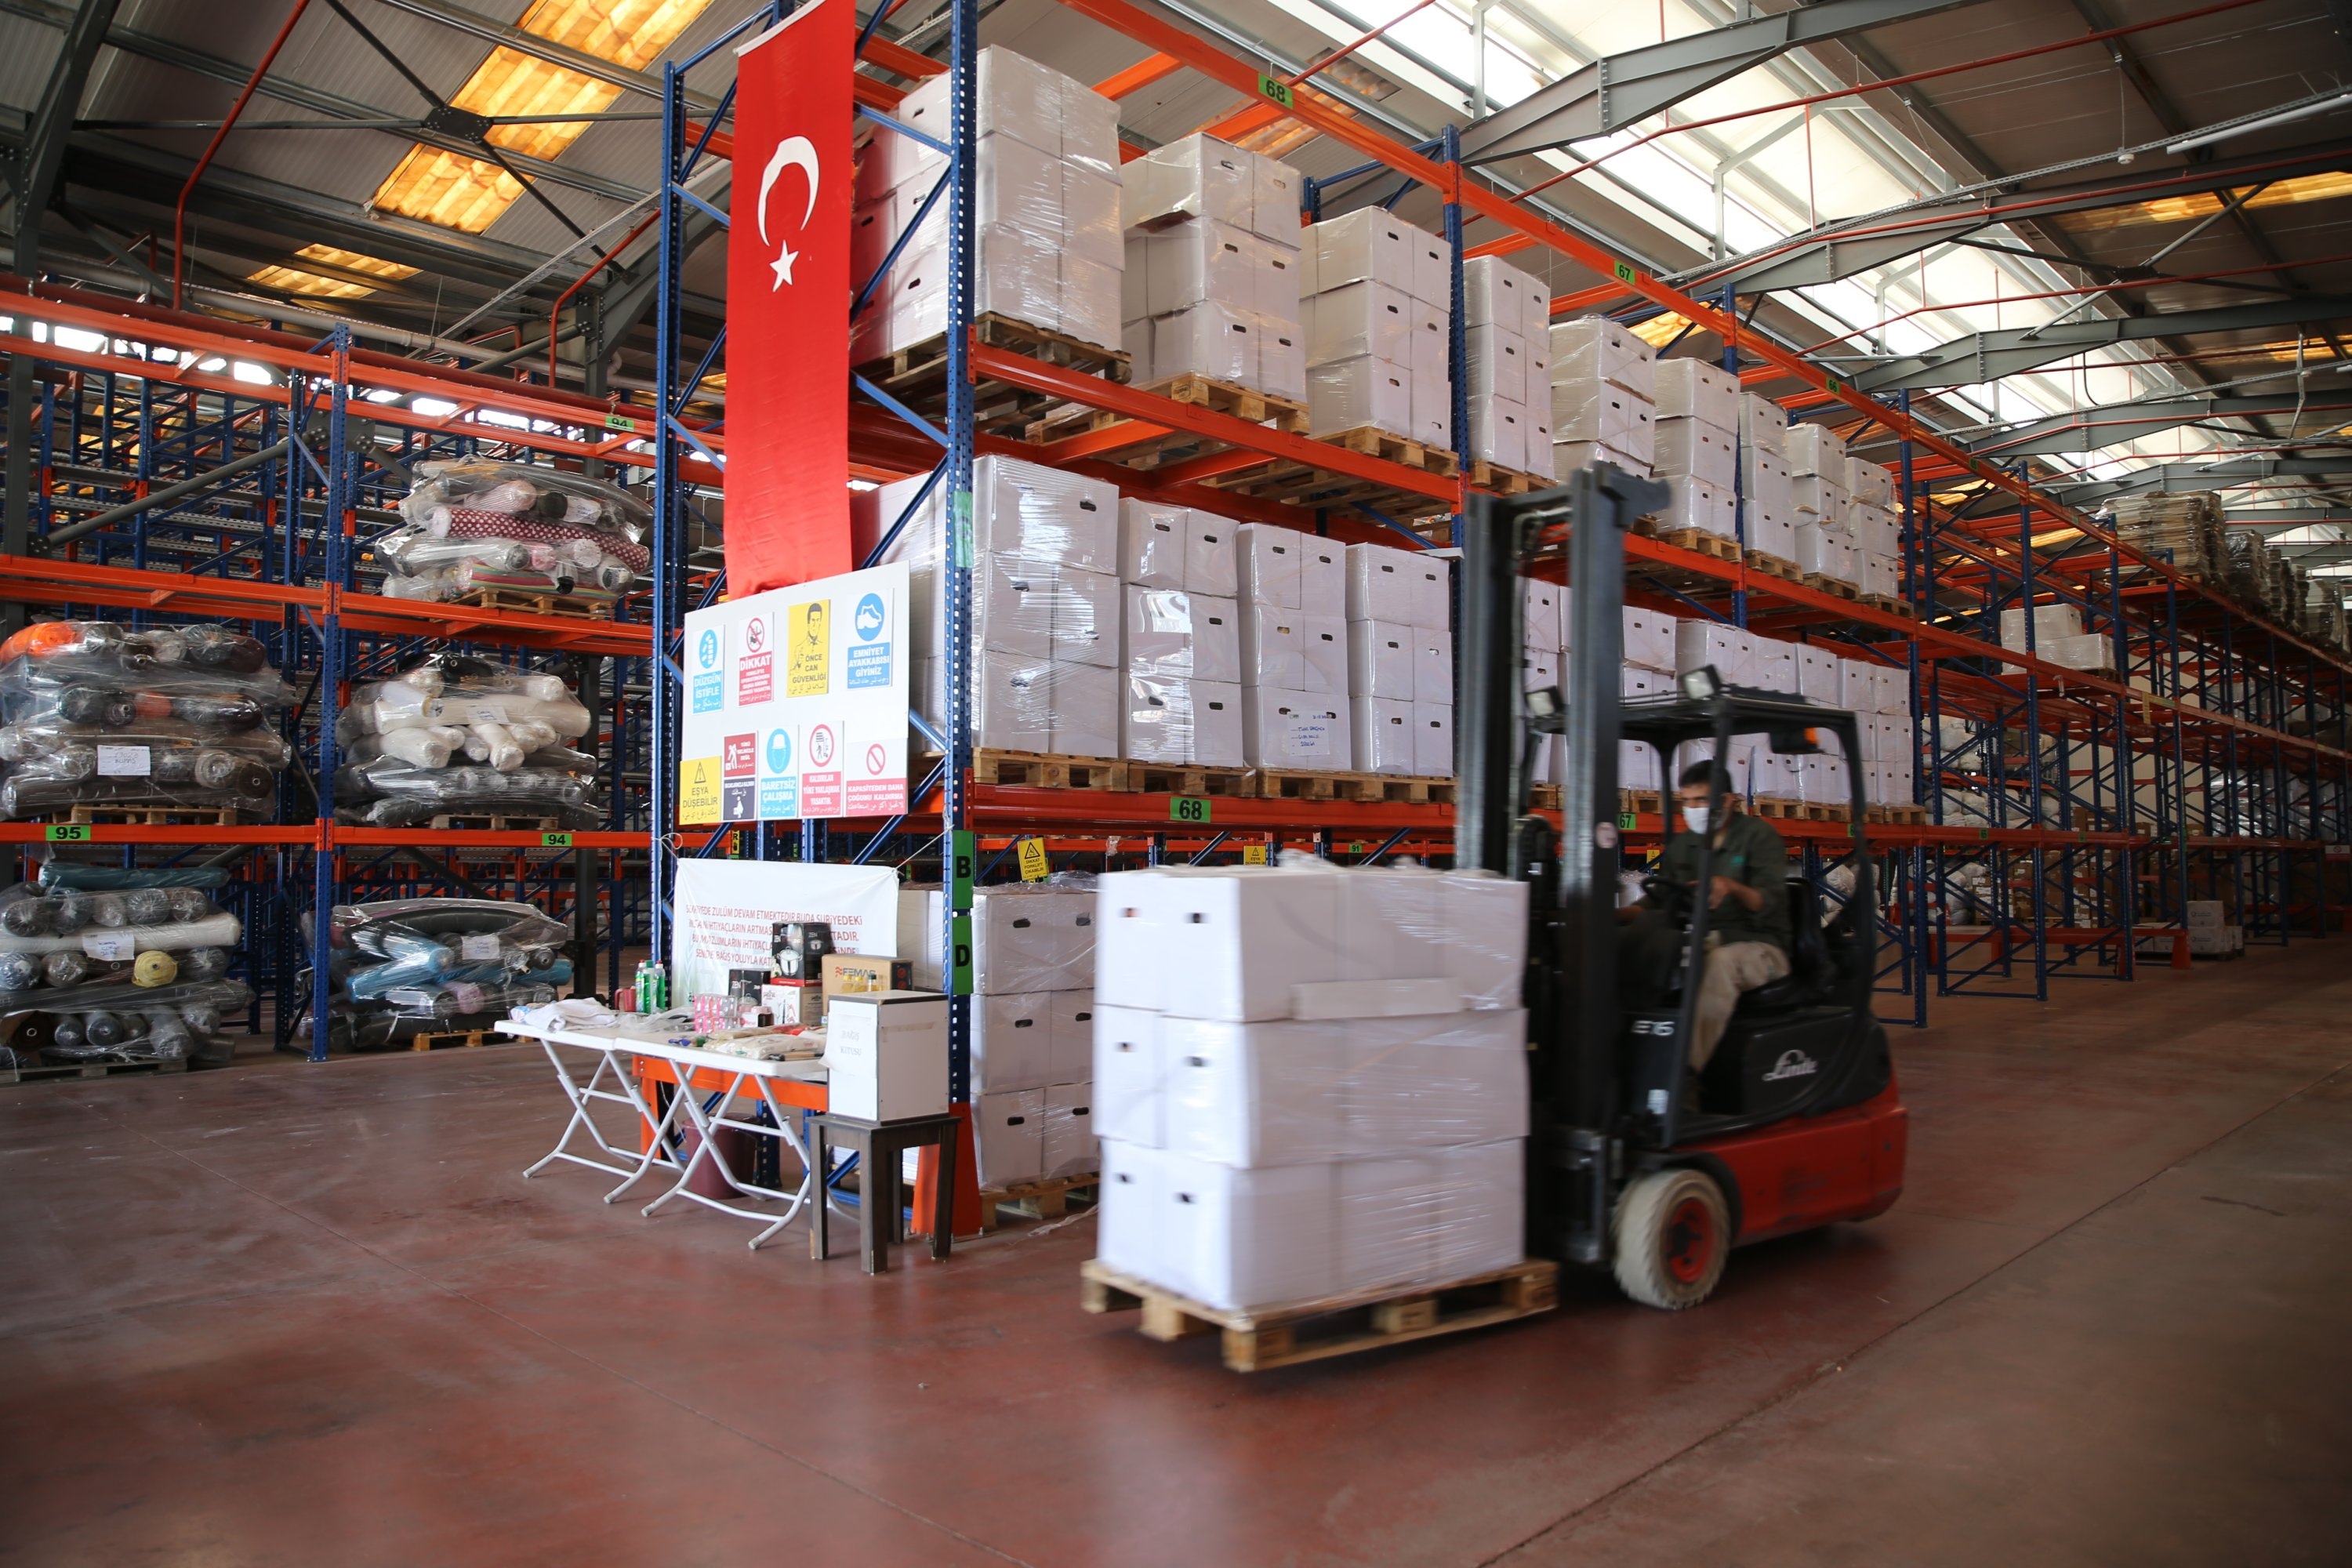 IHH provided 220,000 food packages to Idlib since the beginning of the year, July 19, 2020. (AA)